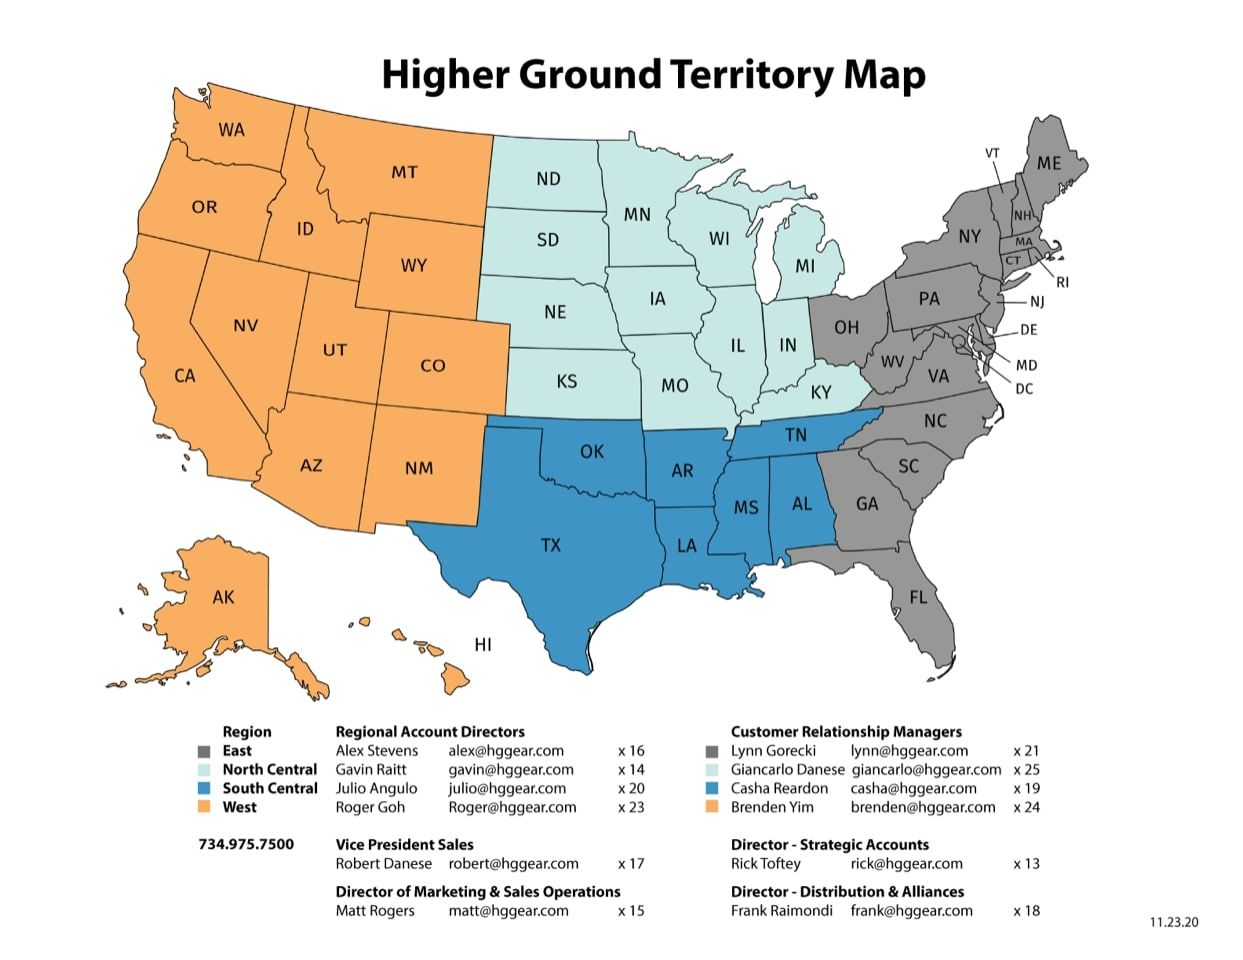 Higher Ground Territory Map